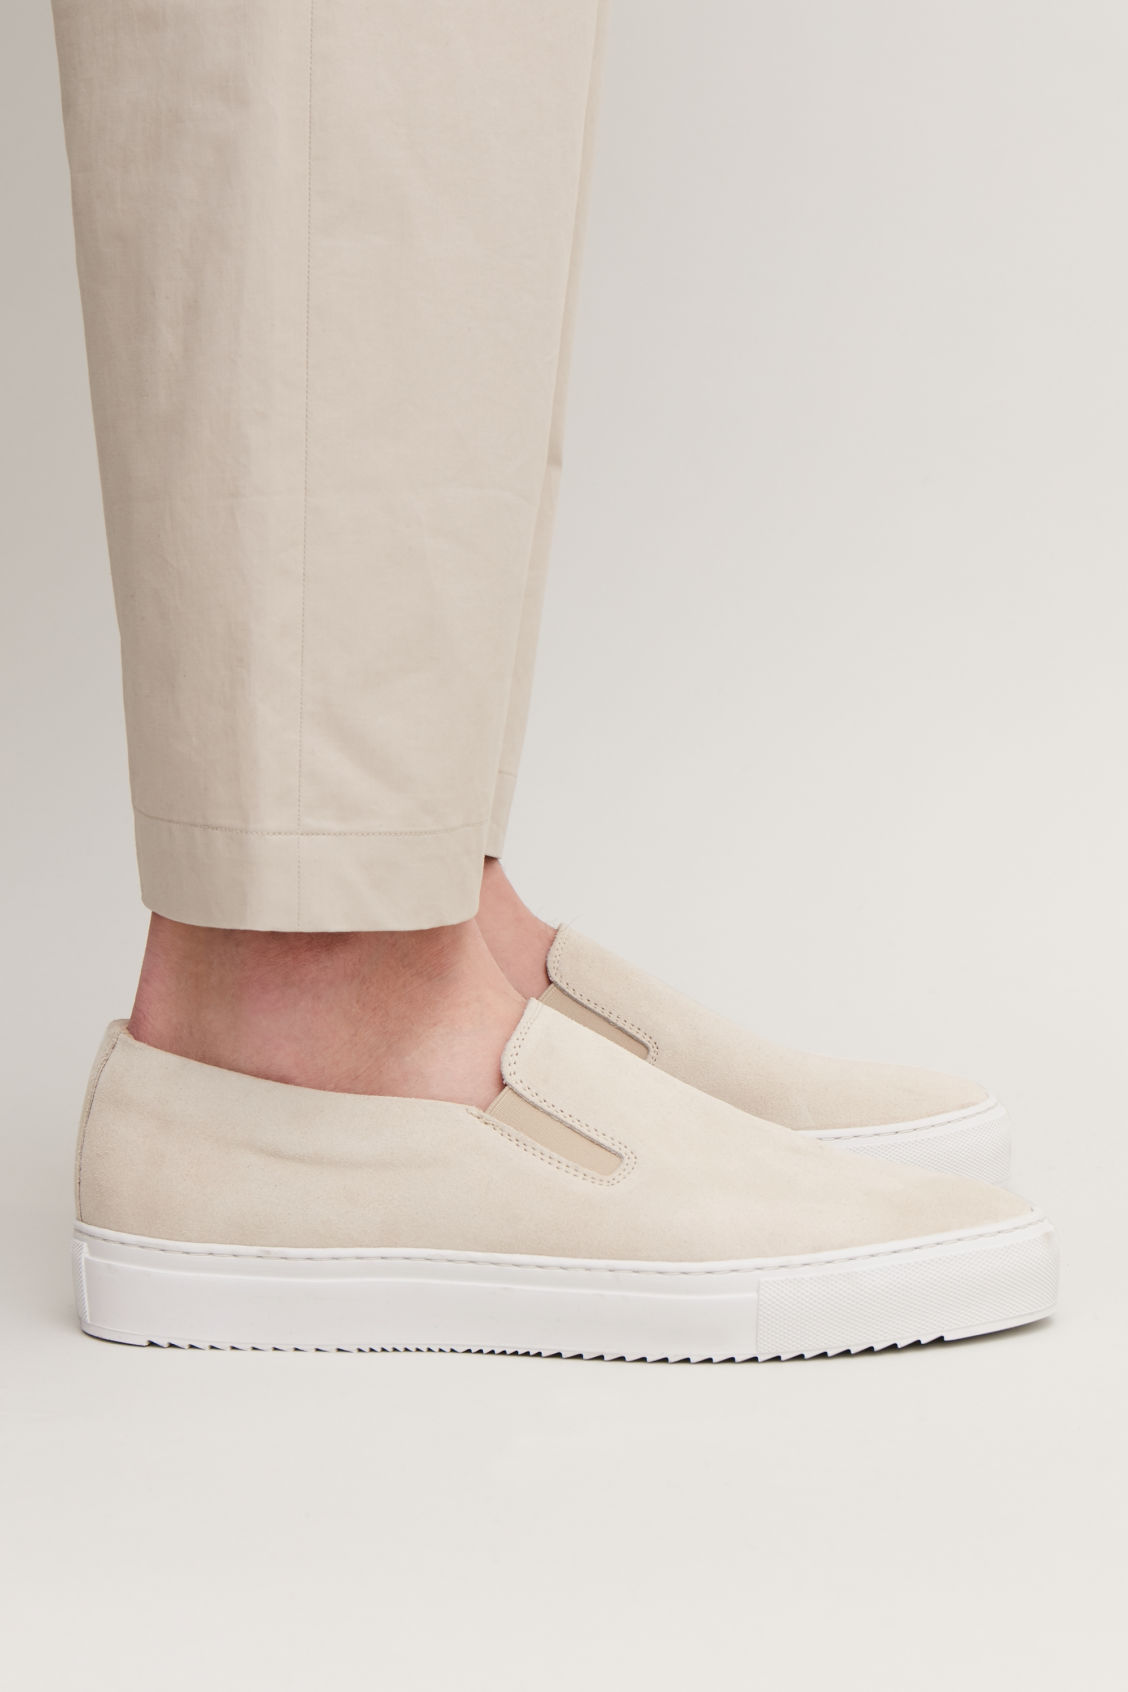 Detailed image of Cos suede slip-on sneakers  in cream